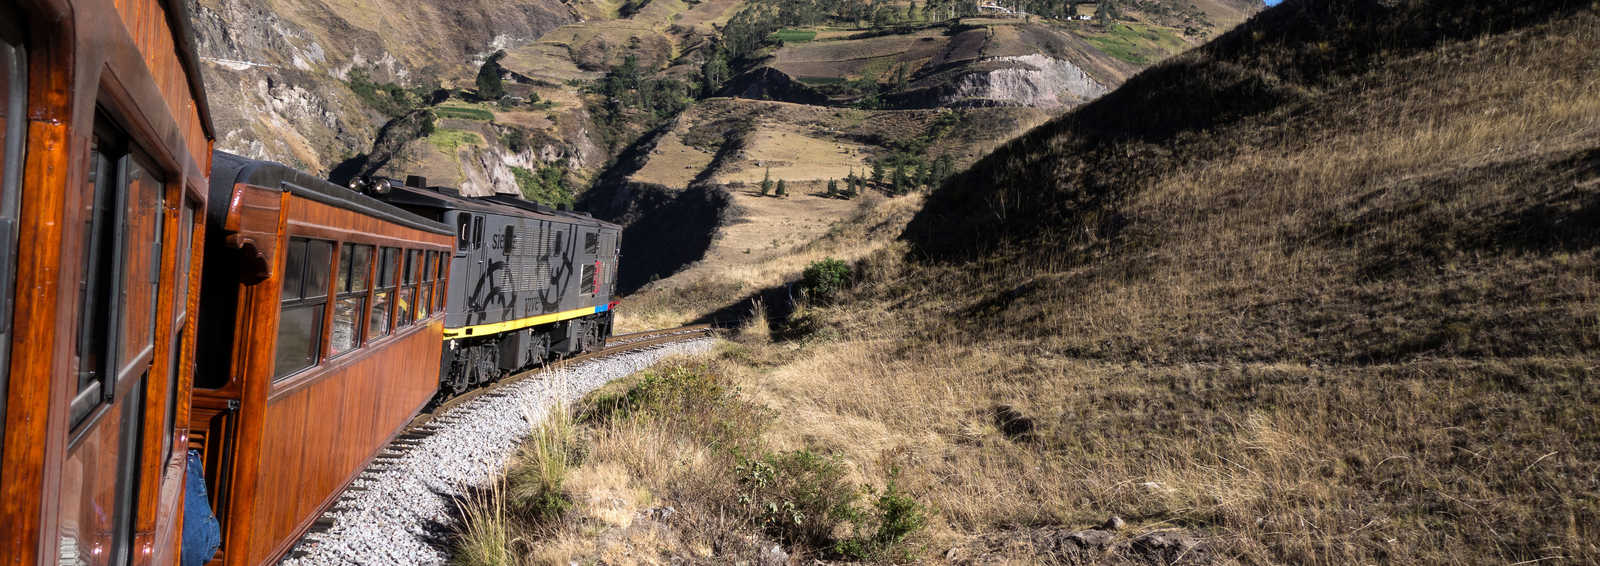 The Devil's Nose train ride, Ecuador